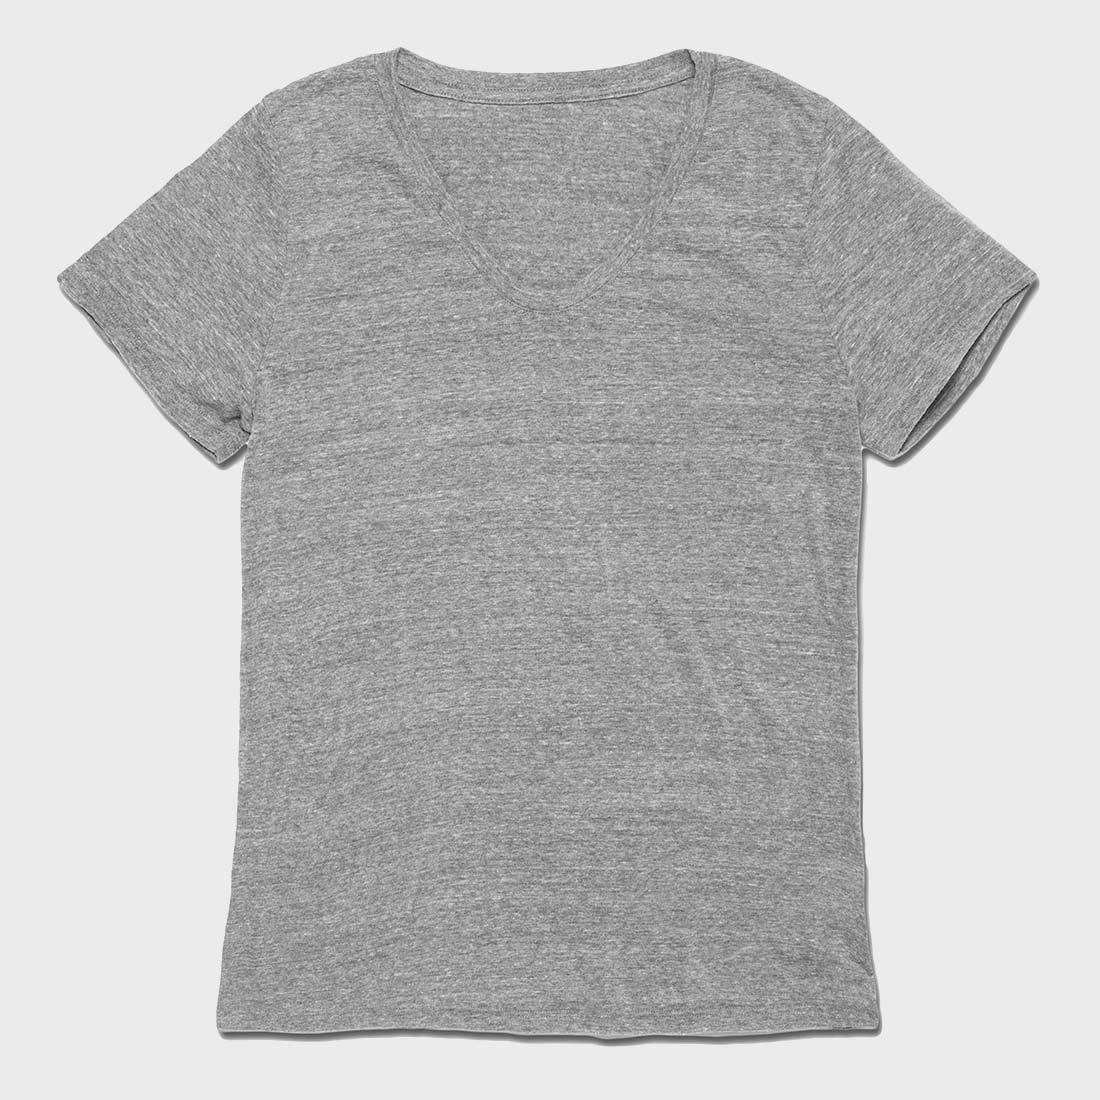 Richer Poorer Women's Scoop V T-Shirt Heather Grey